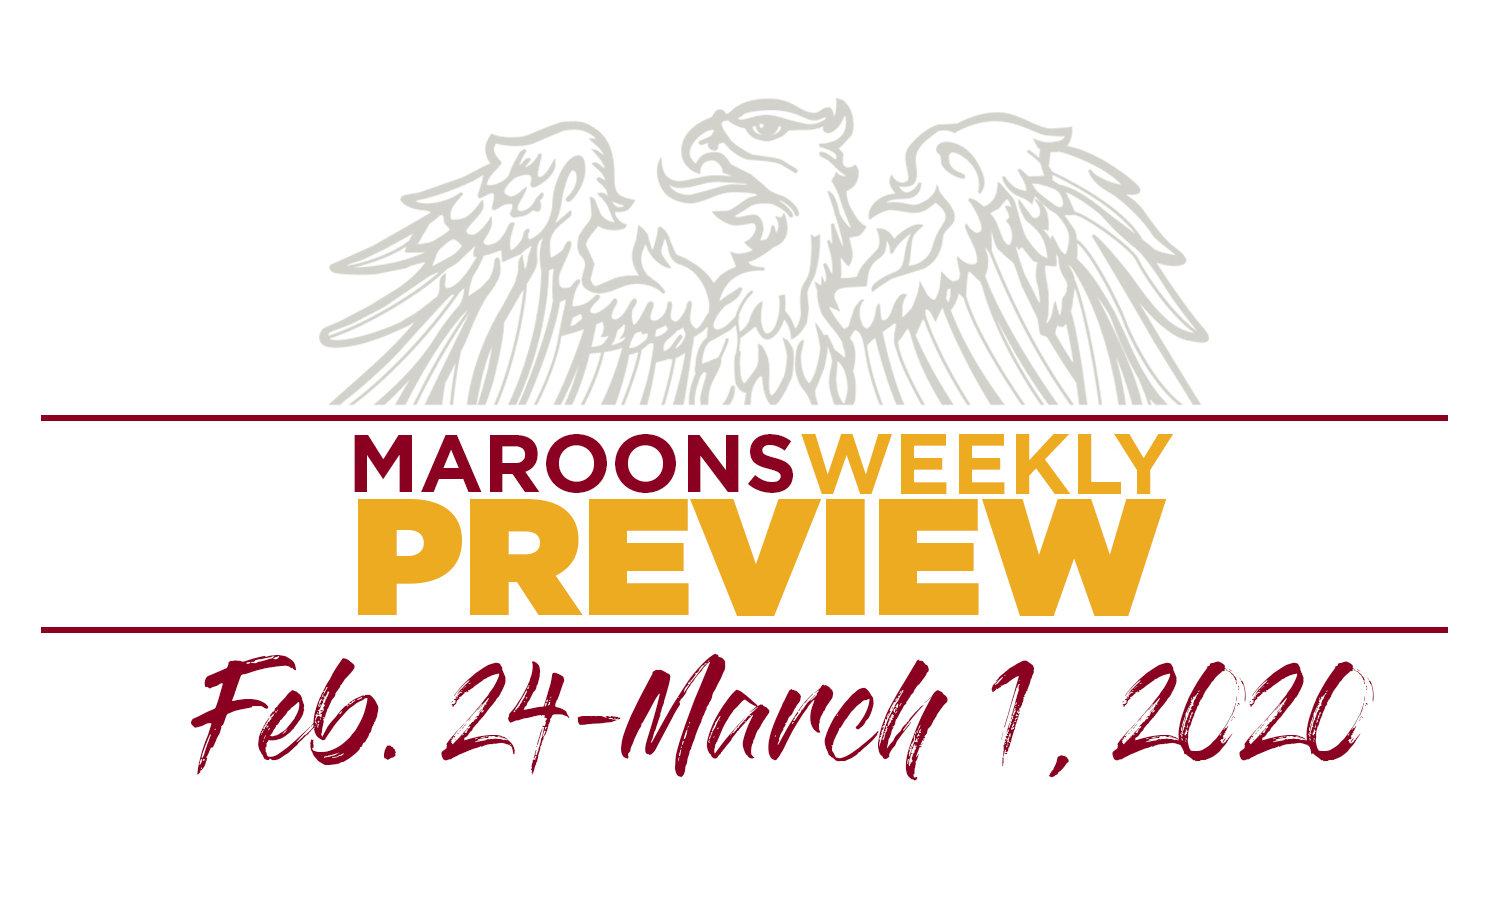 UChicago Athletics Preview: February 24 - March 1